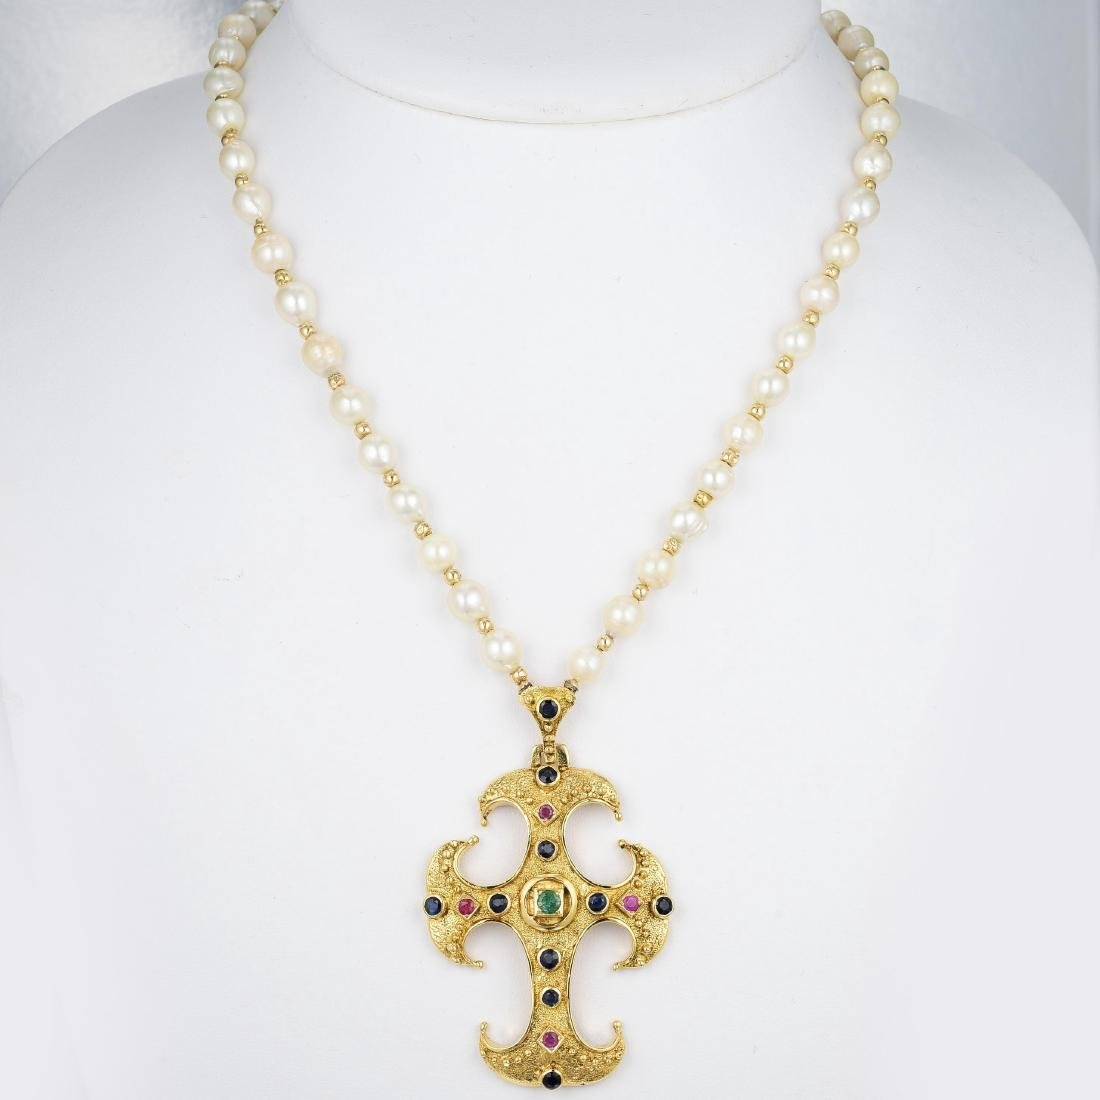 18K Gold, Cultured Pearl and Gemstone Necklace - 2